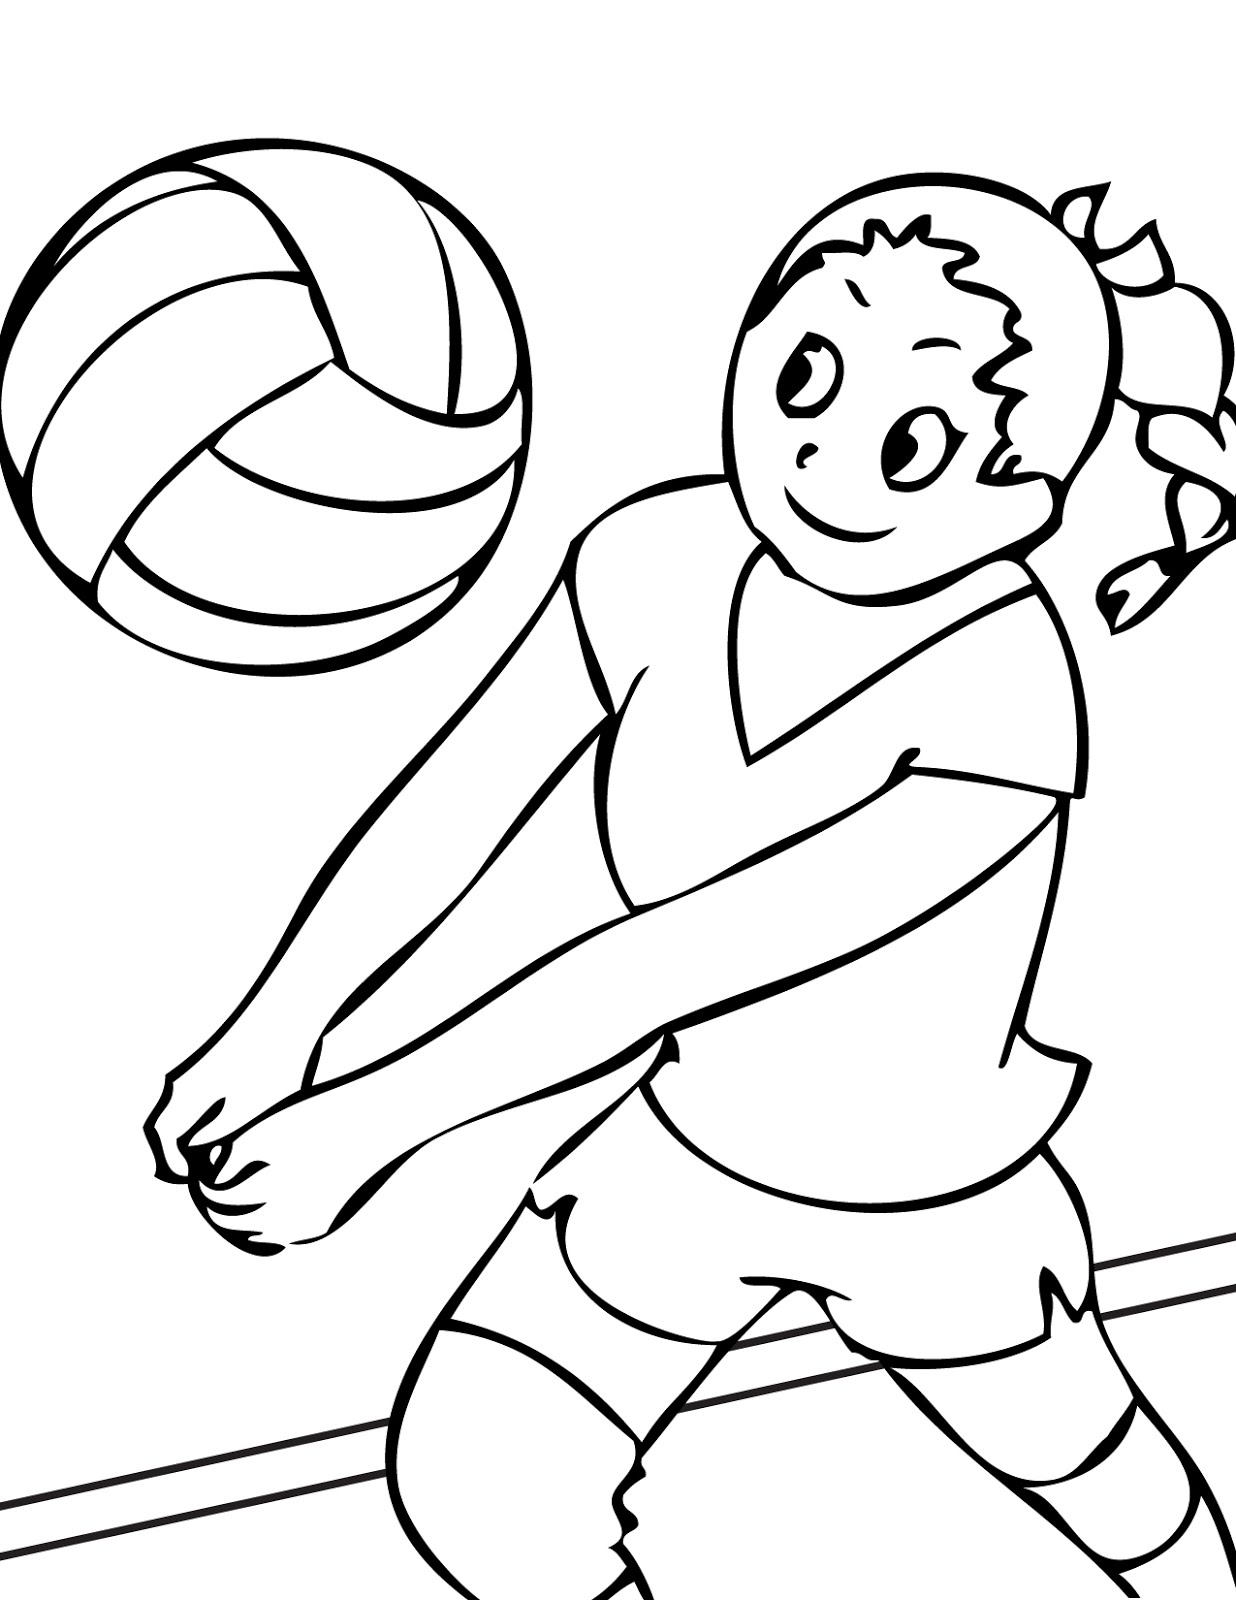 free printable sports coloring pages free printable sports coloring pages for kids printable free coloring sports pages